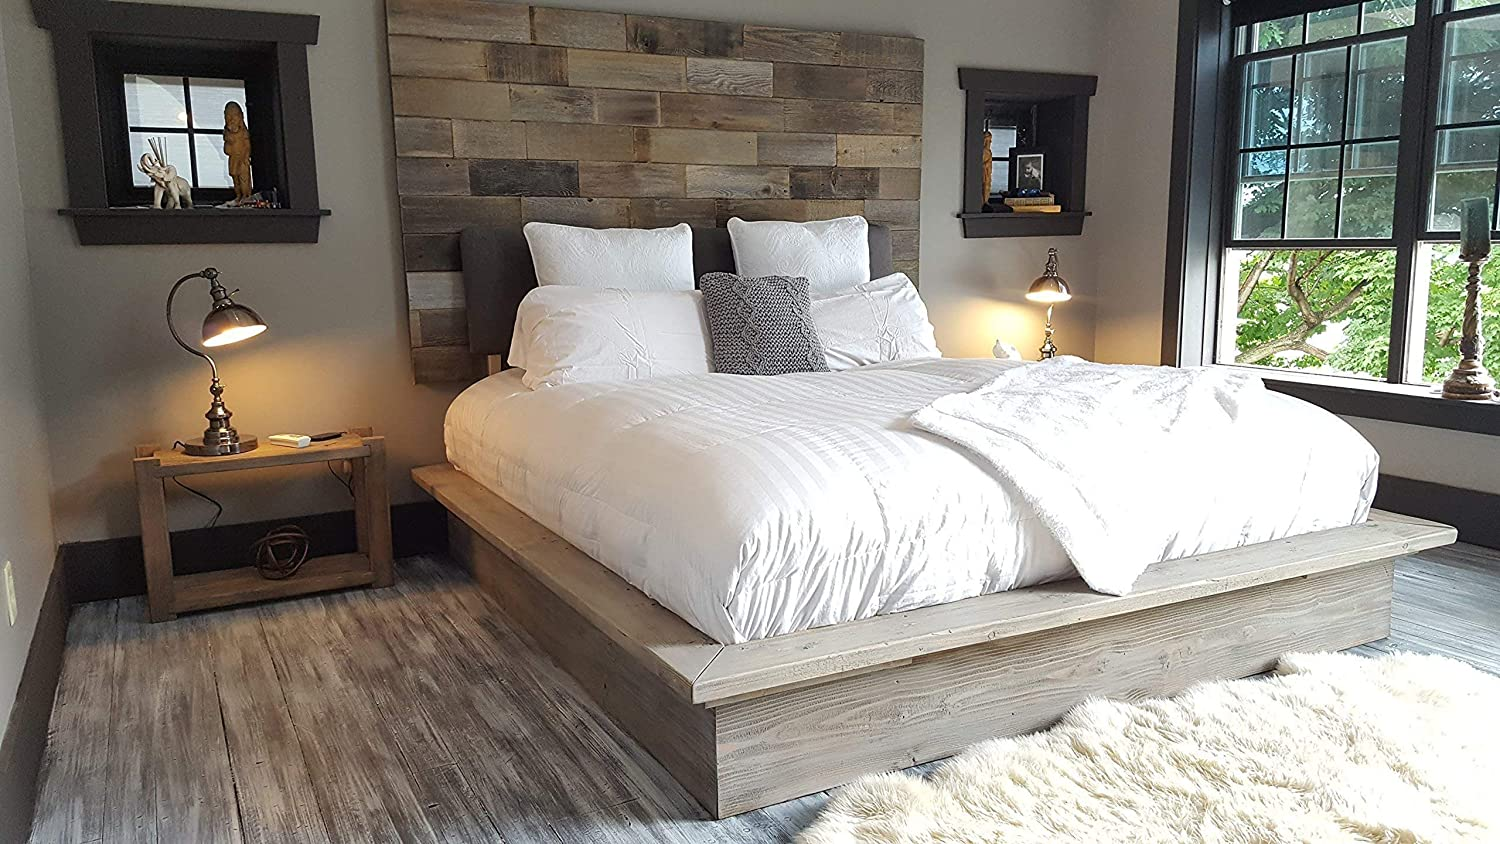 Grey weathered modern industrial reclaimed recycled wood wall mount  headboard art